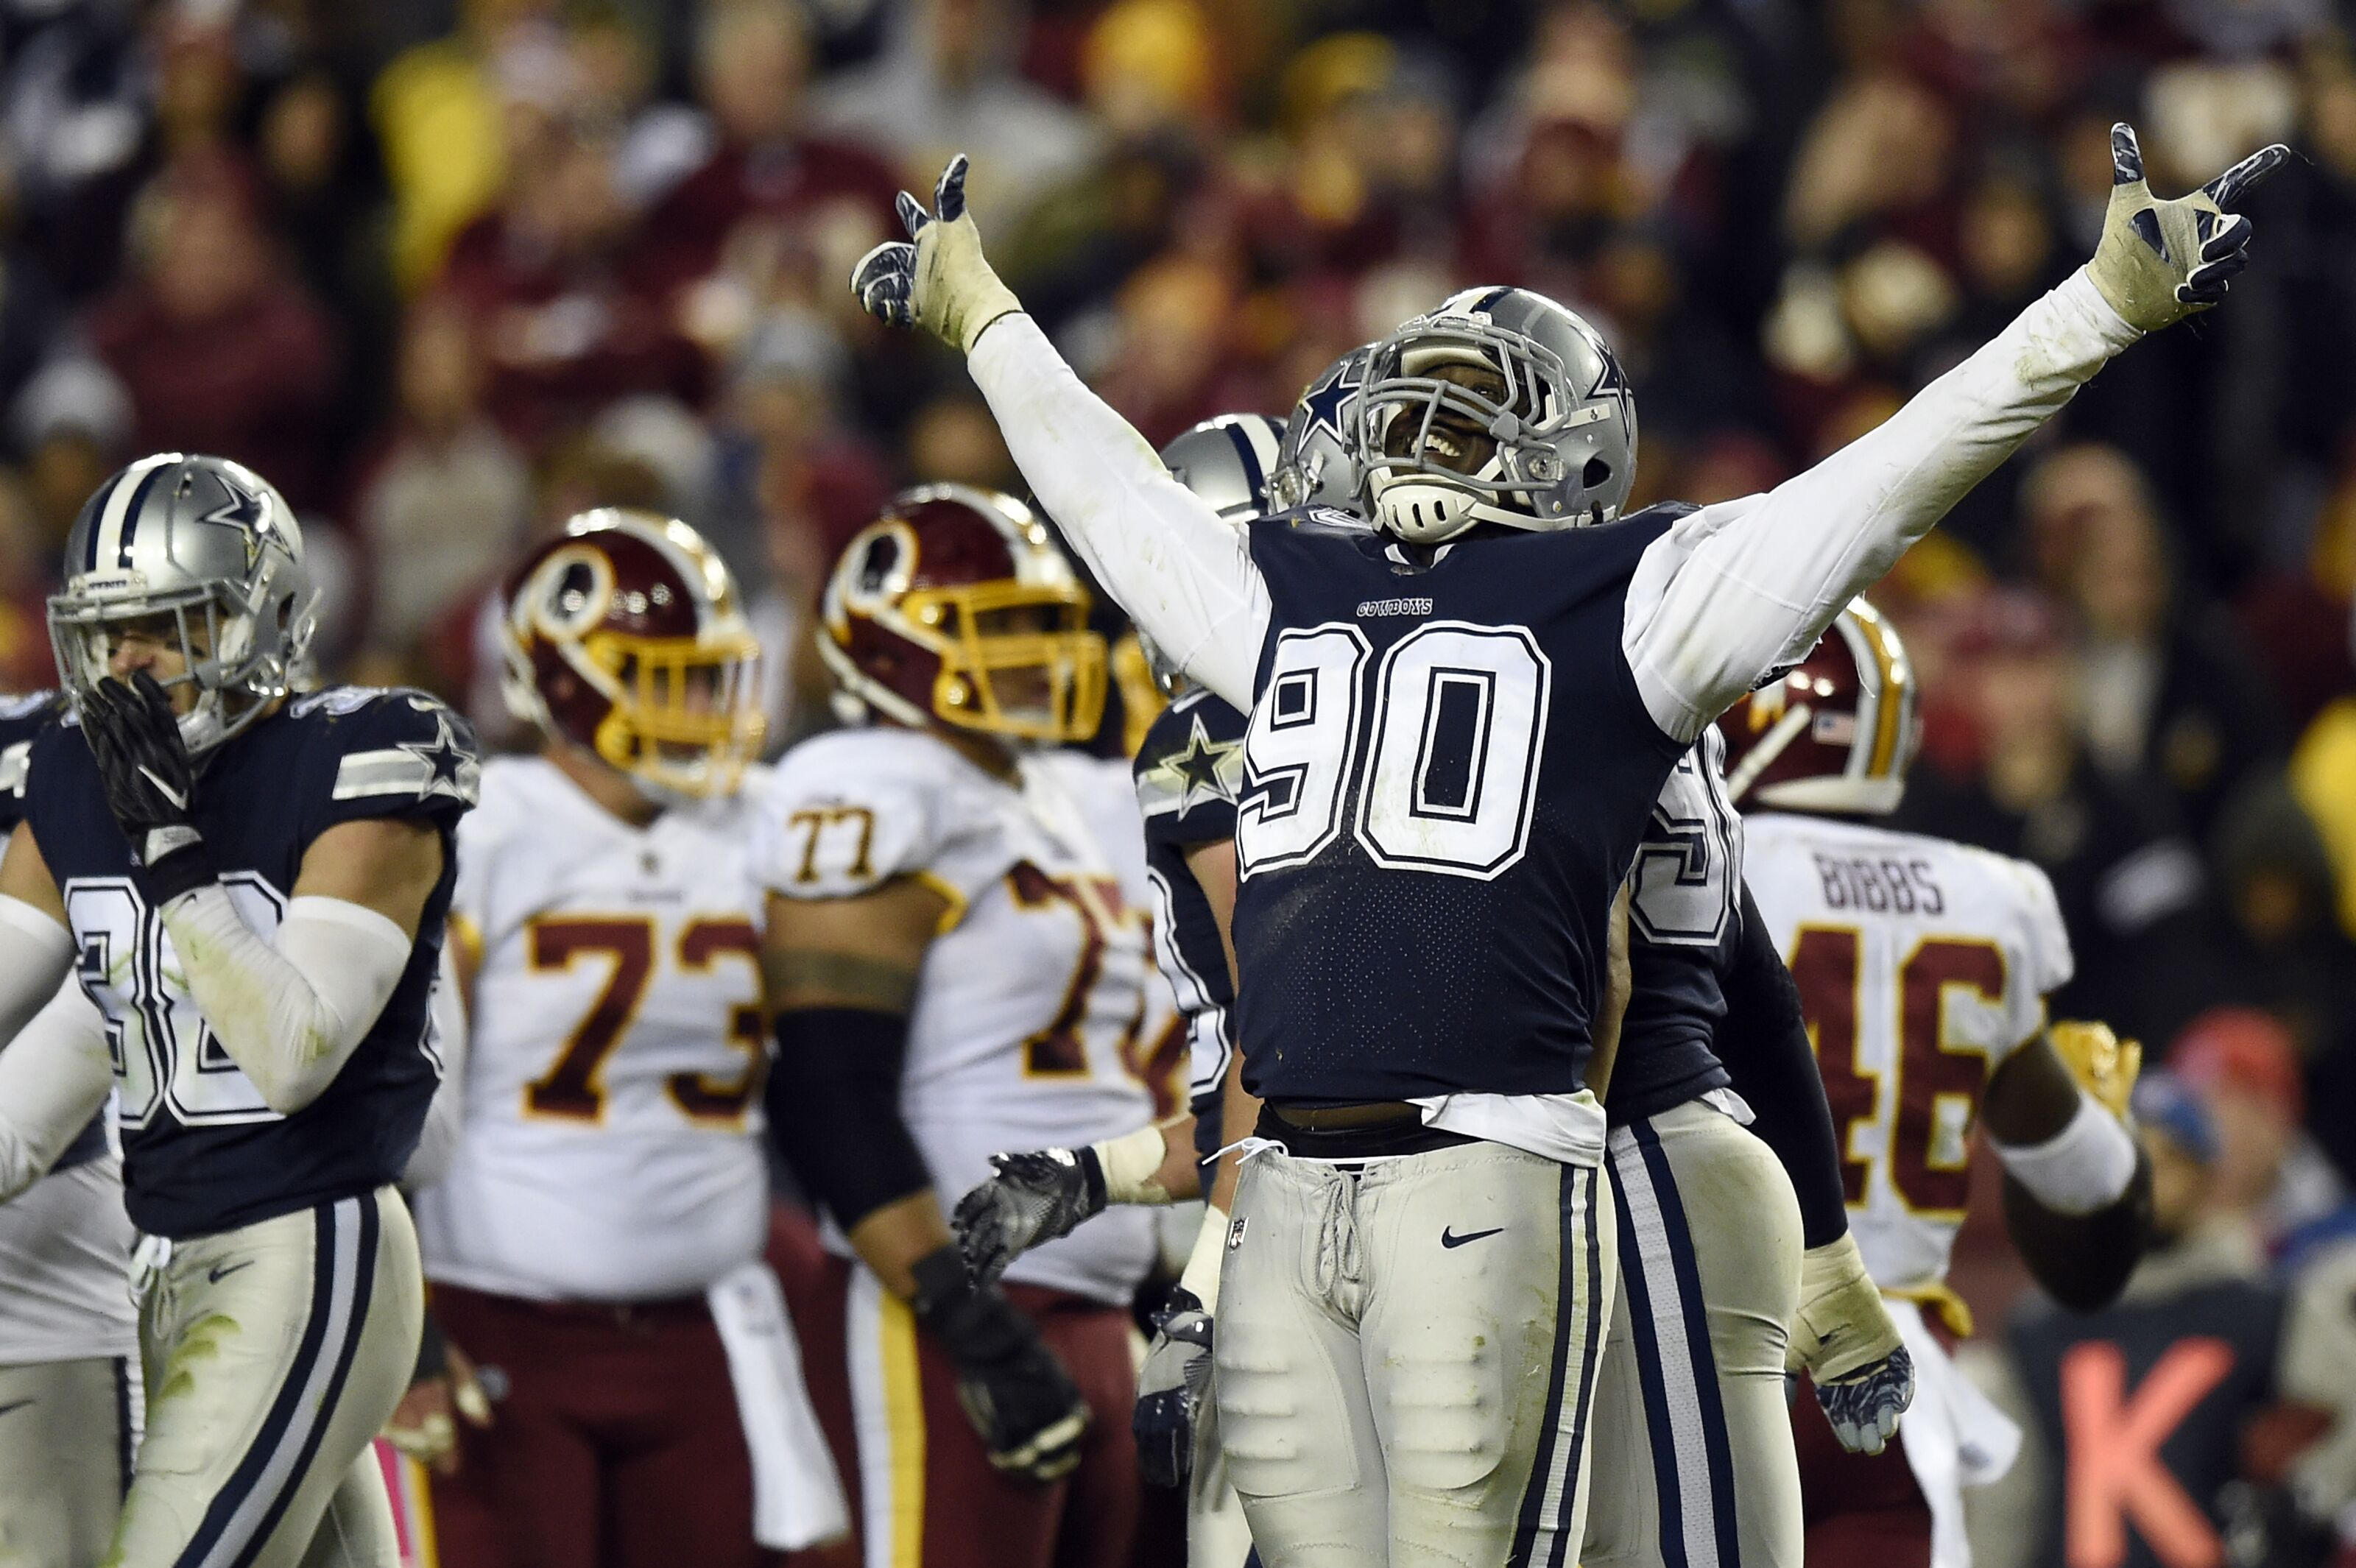 The Dallas Cowboys defensive line will take a step up in 2019